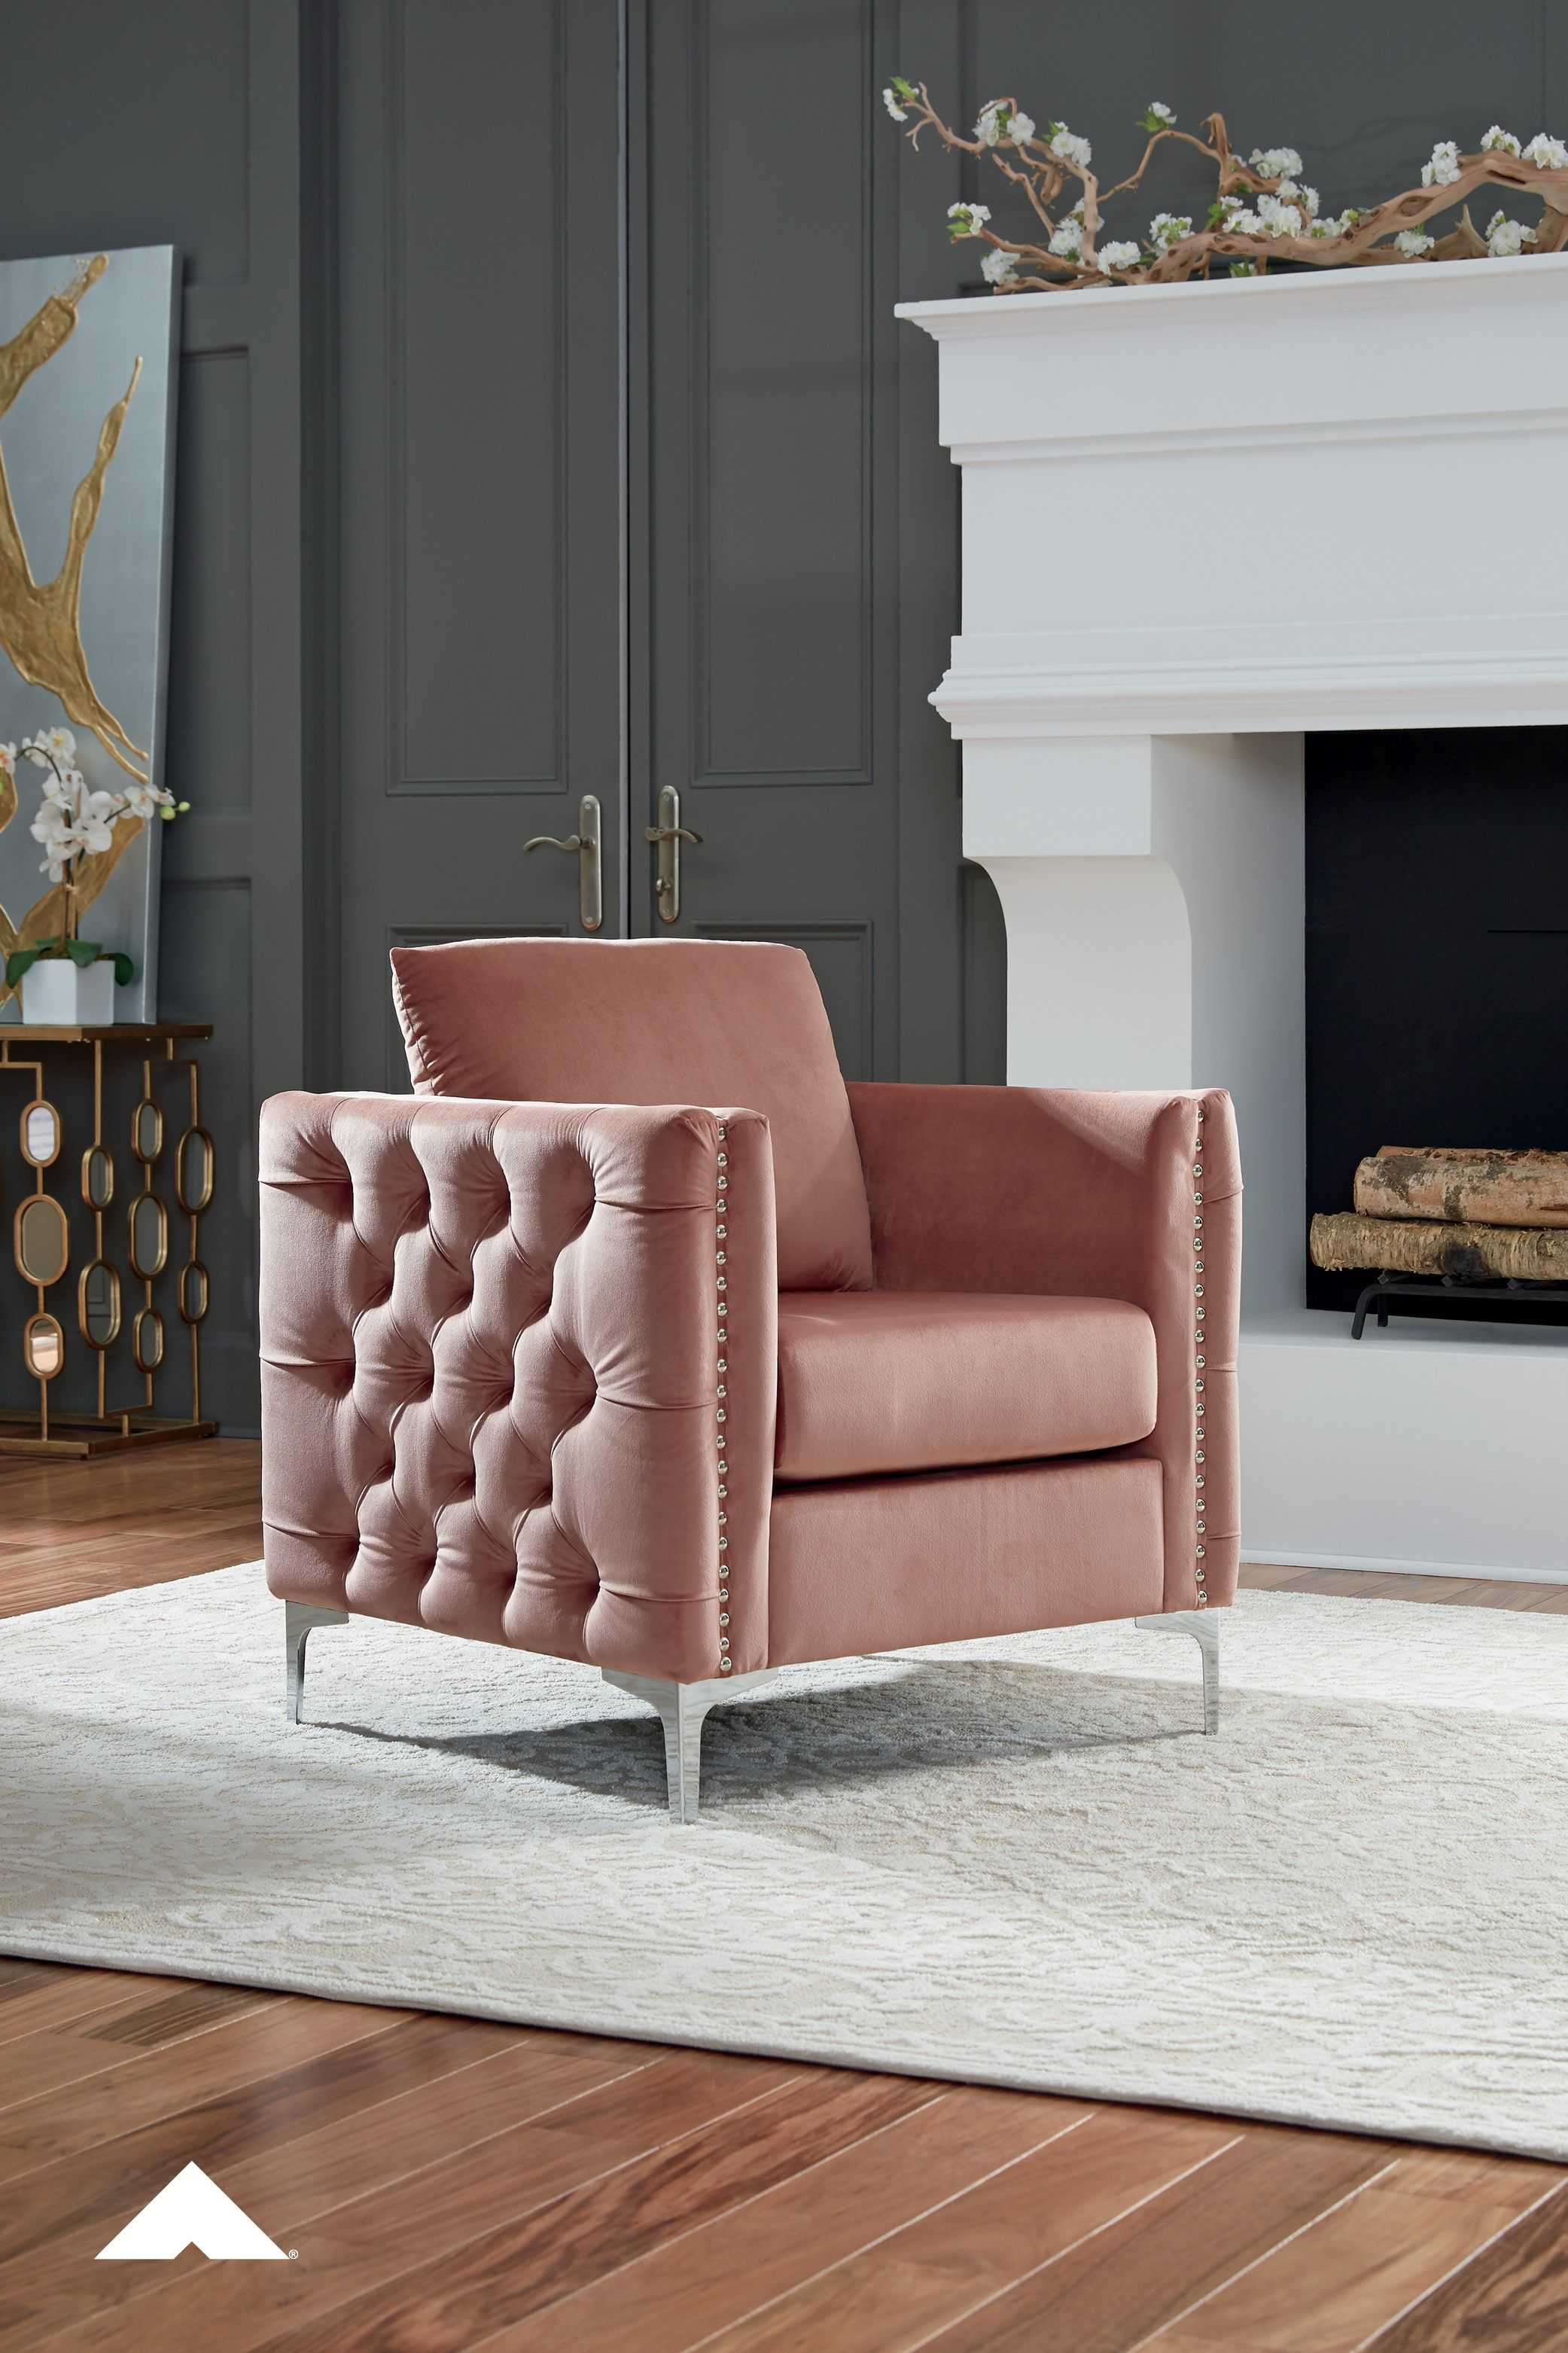 Lizmont Plush Pink Accent Chair By Ashley Furniture Attention